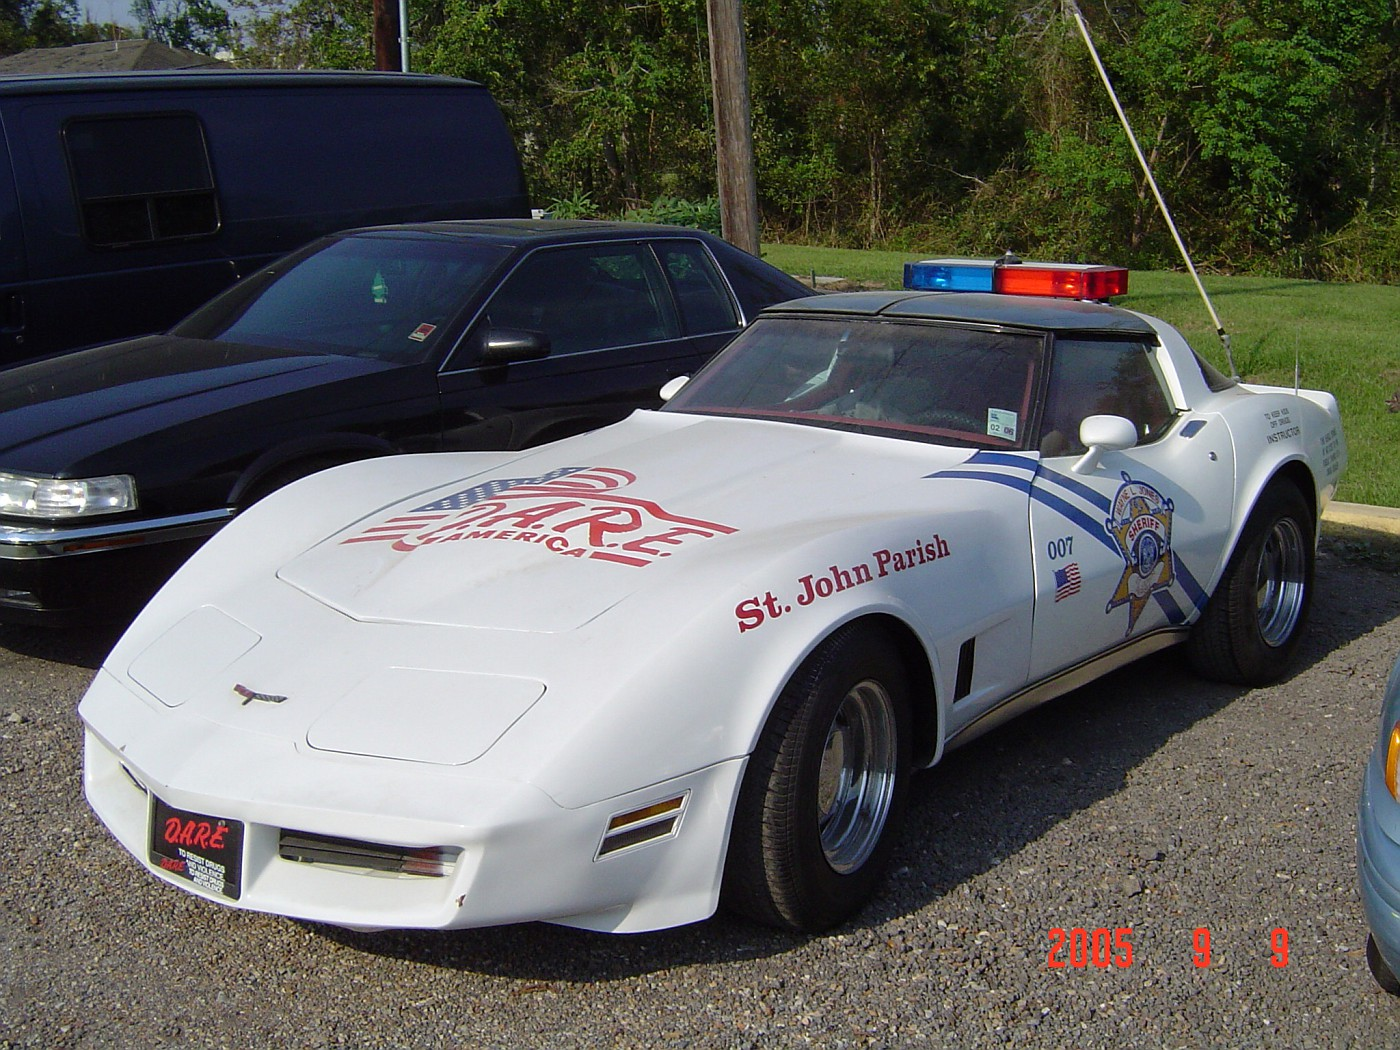 St. John Parish DARE Corvette